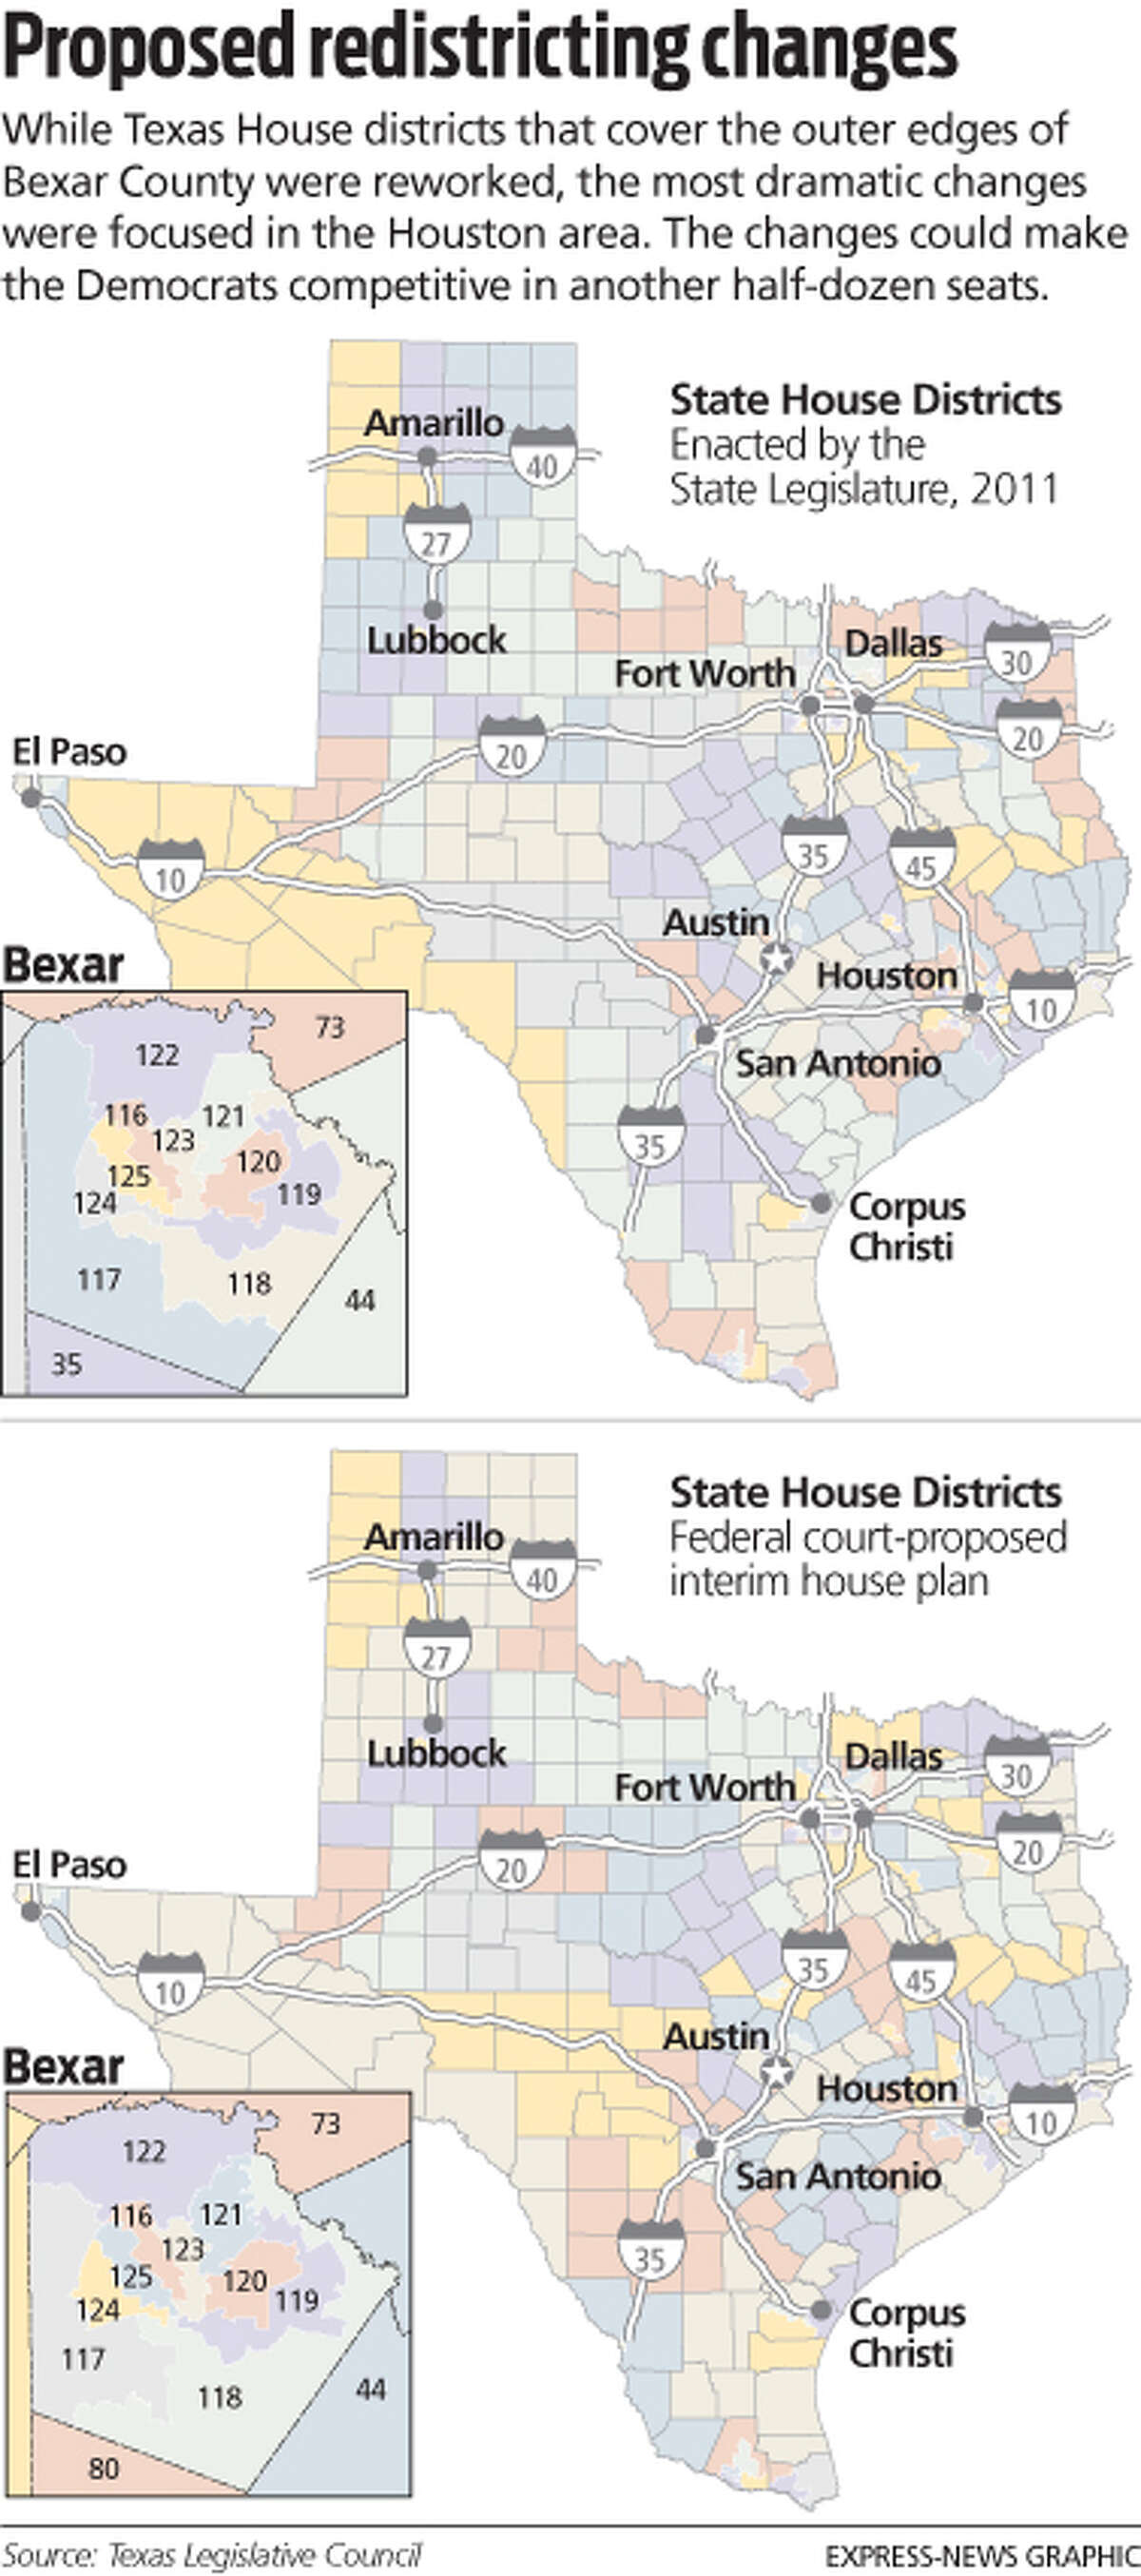 Proposed redistricting change to Texas state house districts